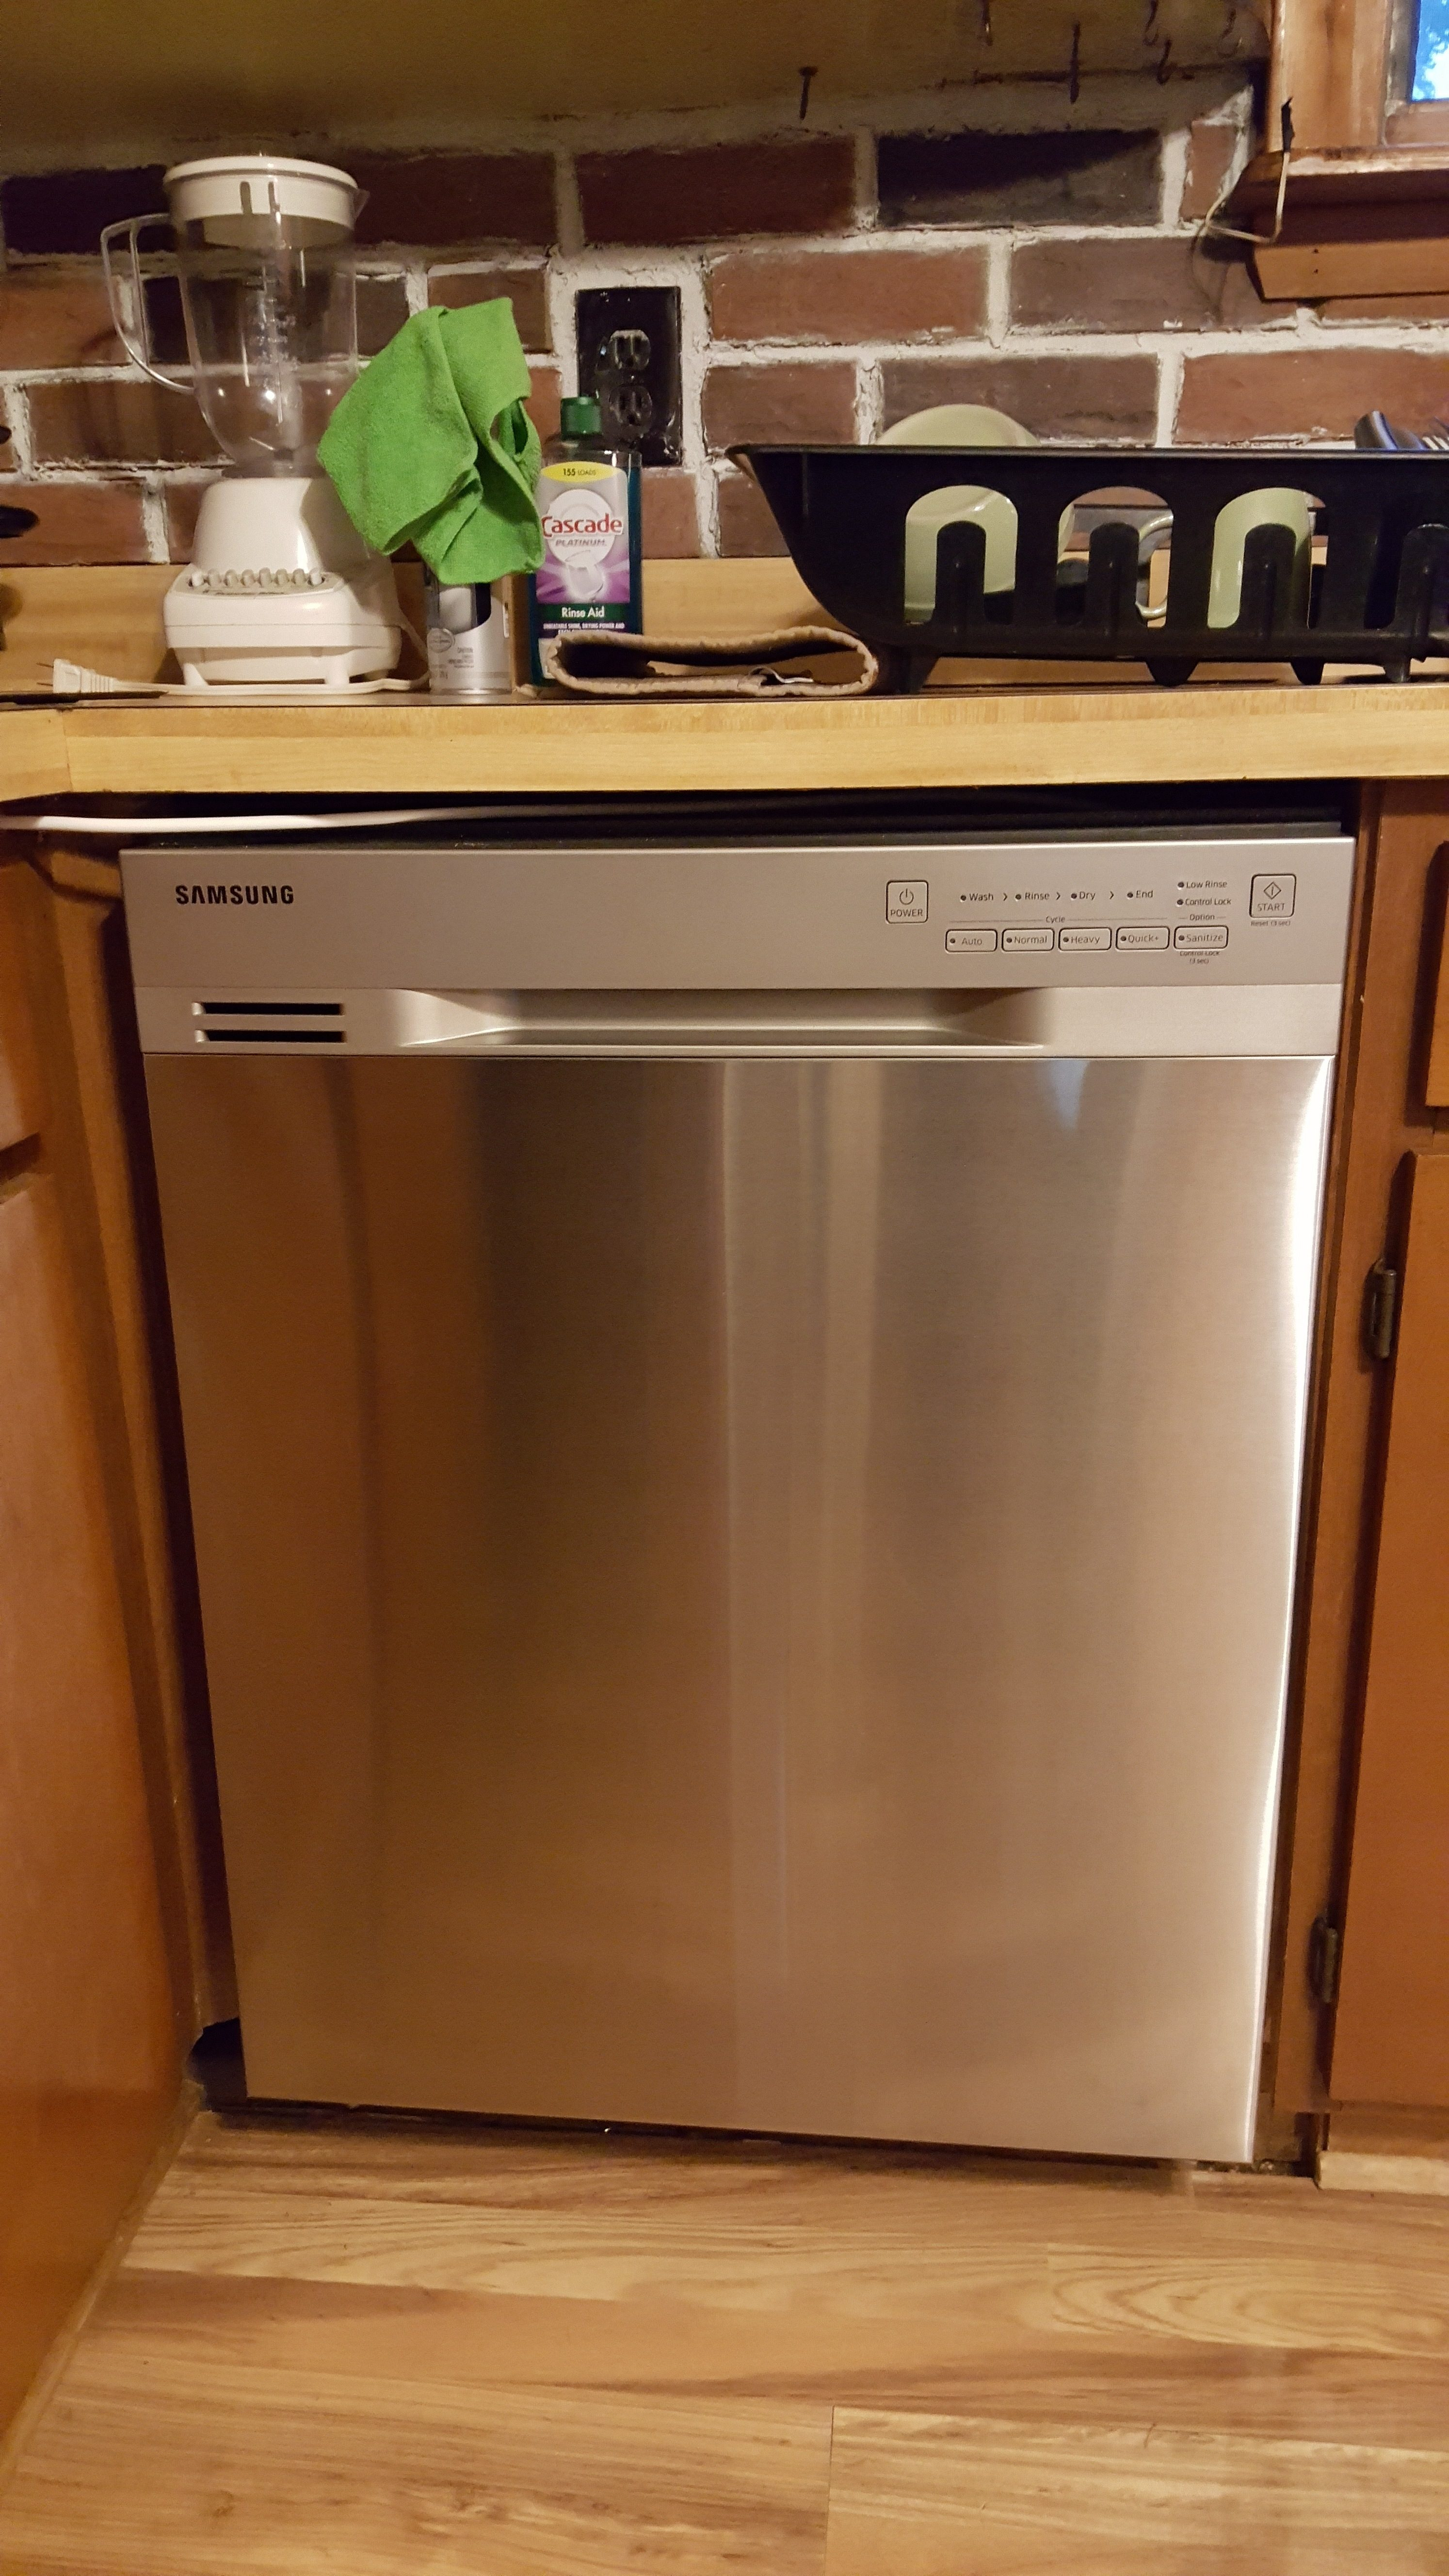 We purchased a stainless steel appliance package along with washer and  dryer and spent over $3,500 with hhgregg. 4